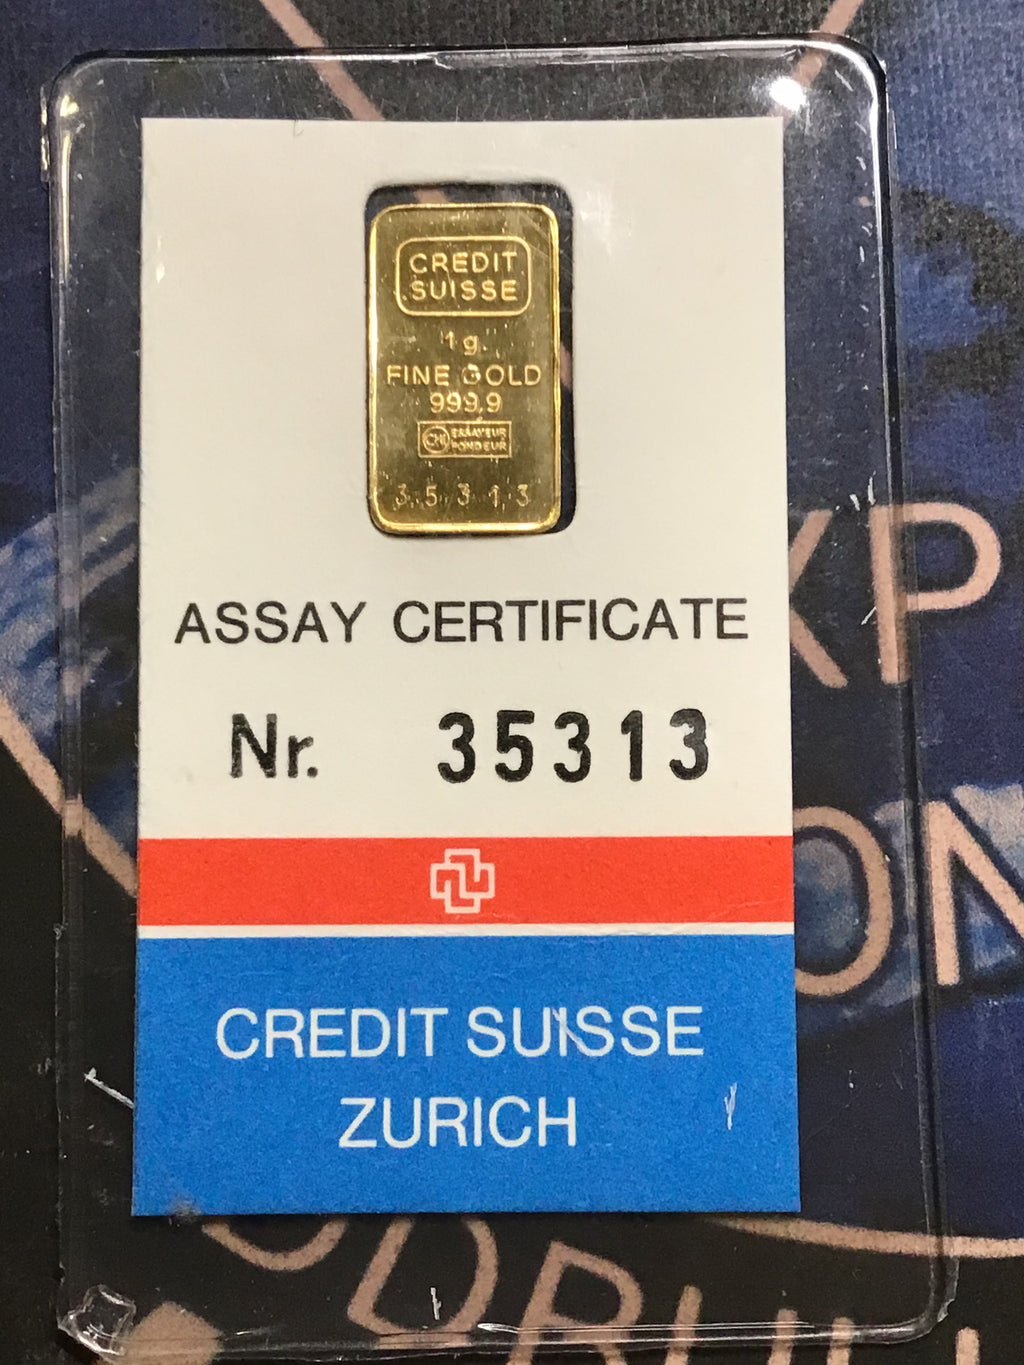 Credit Suisse Zurich 1 gram Gold Bar in Certified Assay